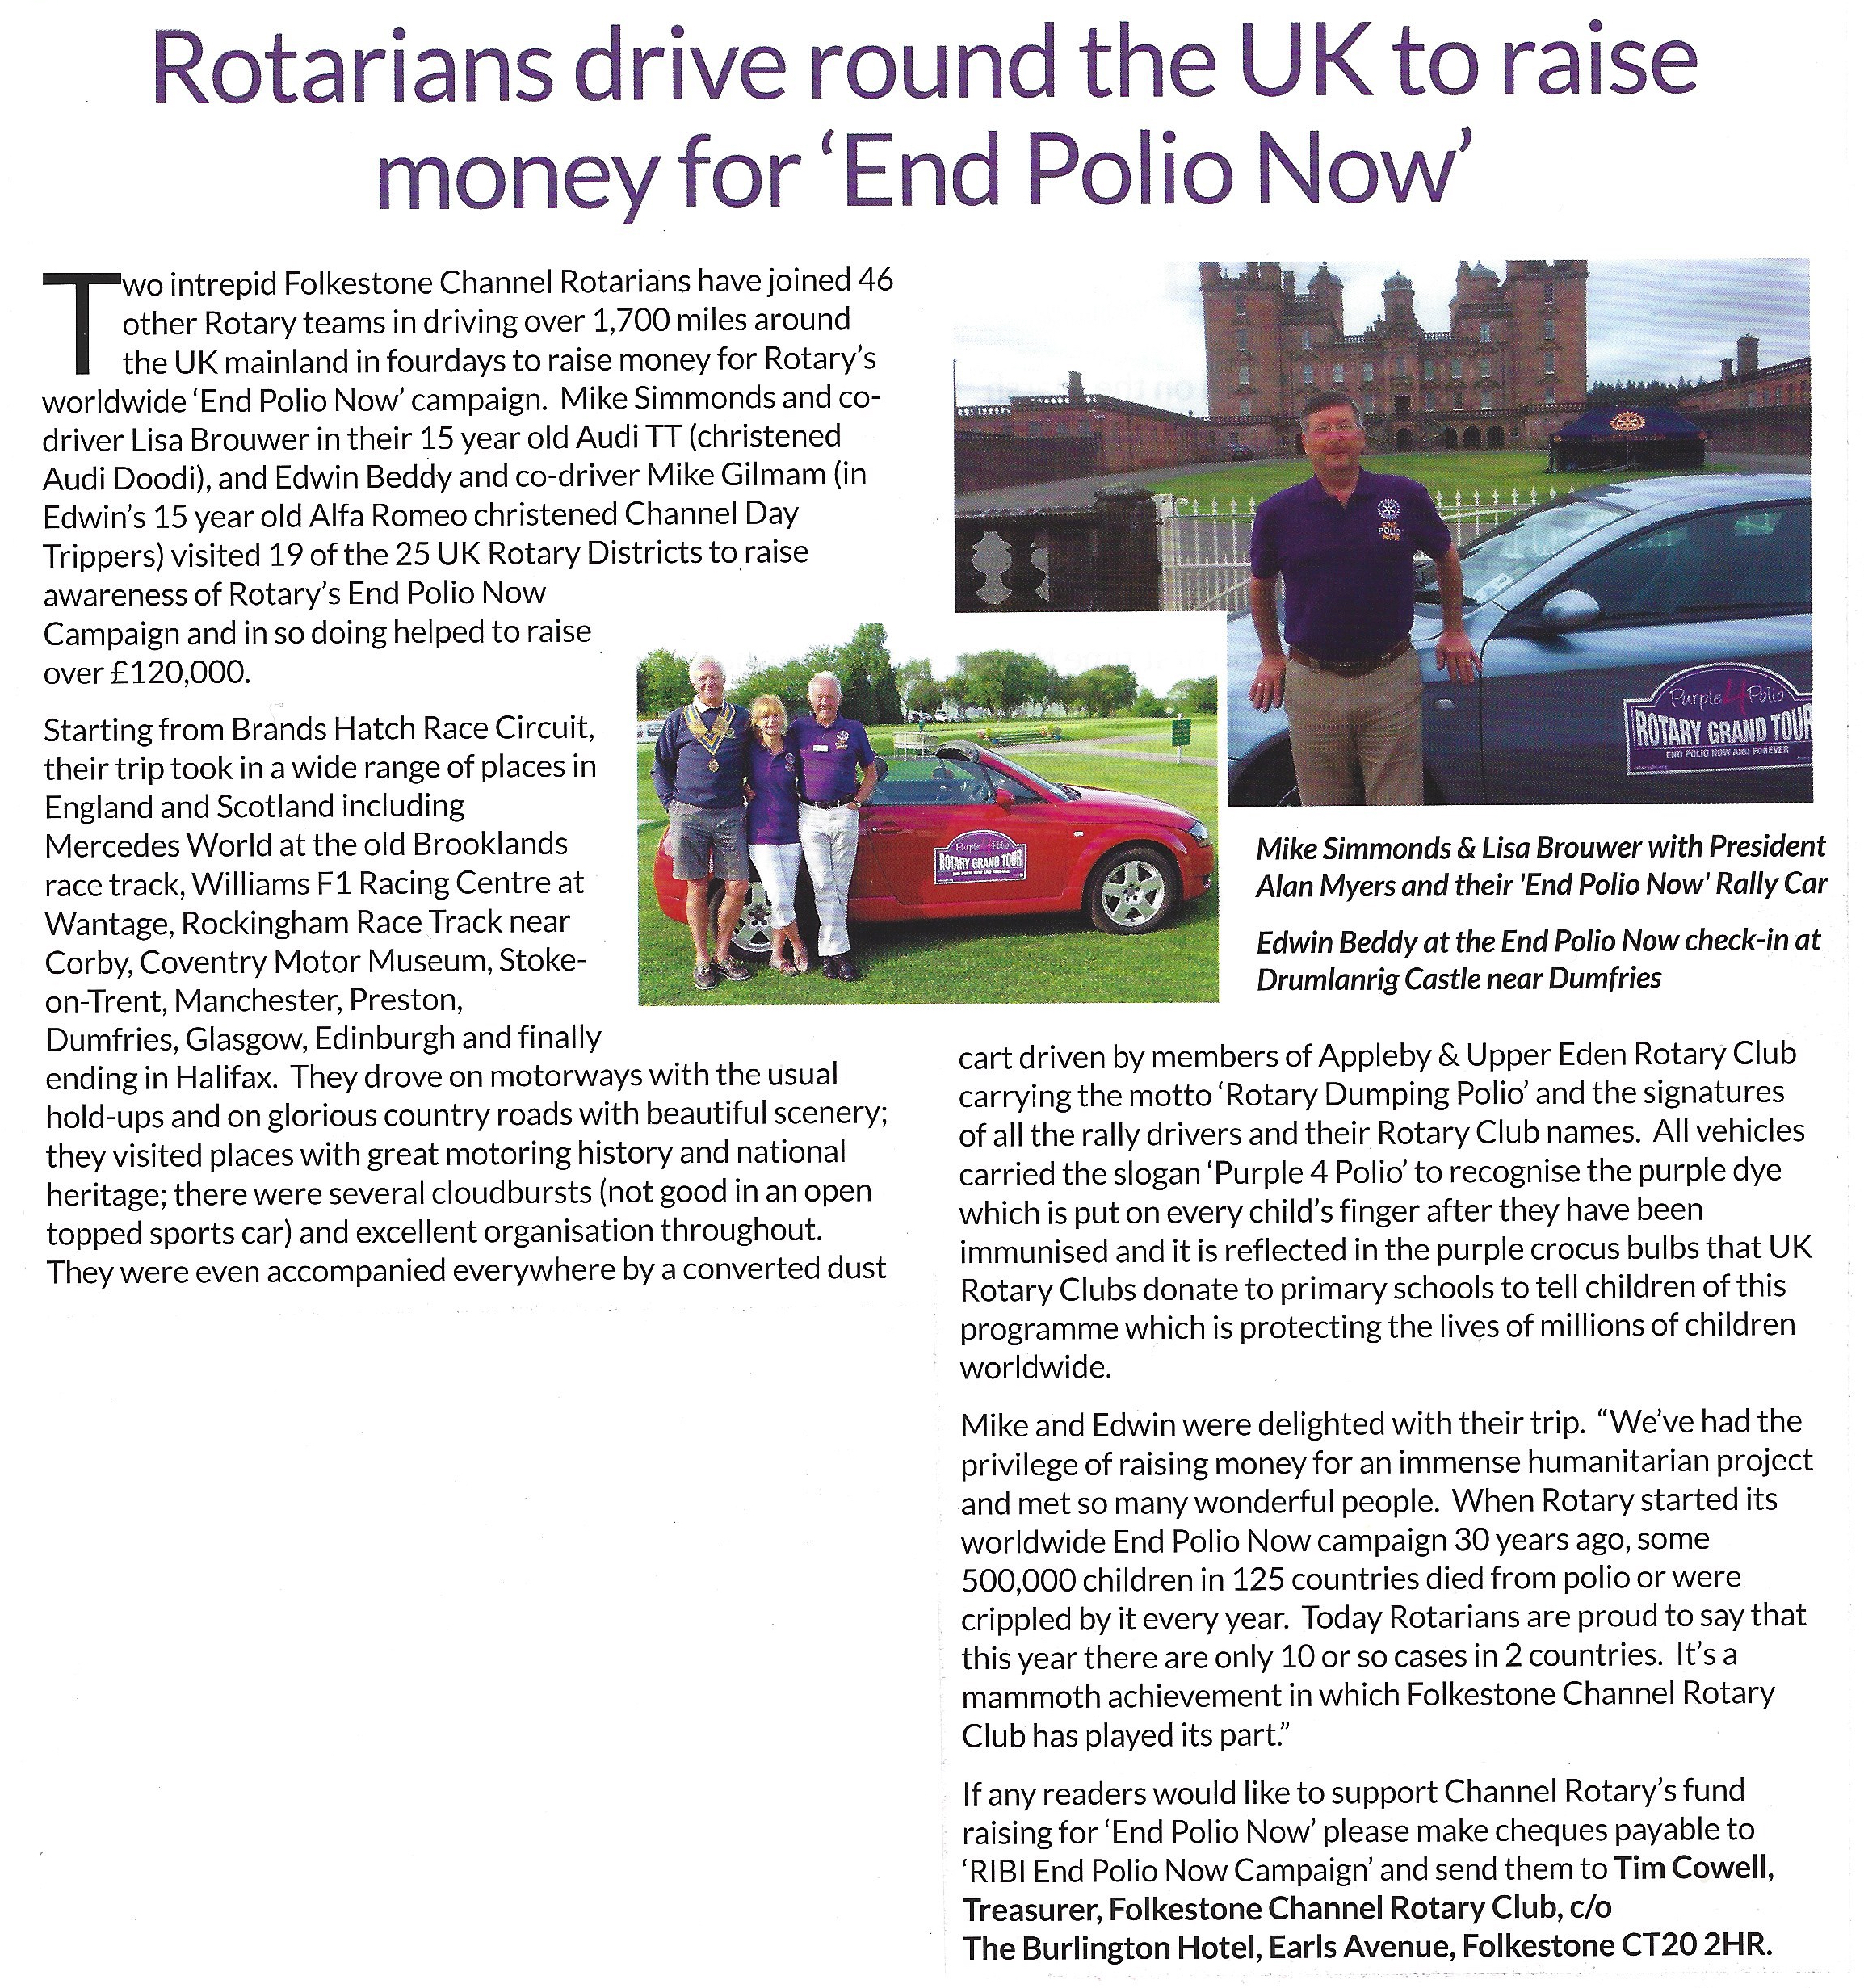 the-looker-13-06-18-end-polio-now-car-rally.jpg